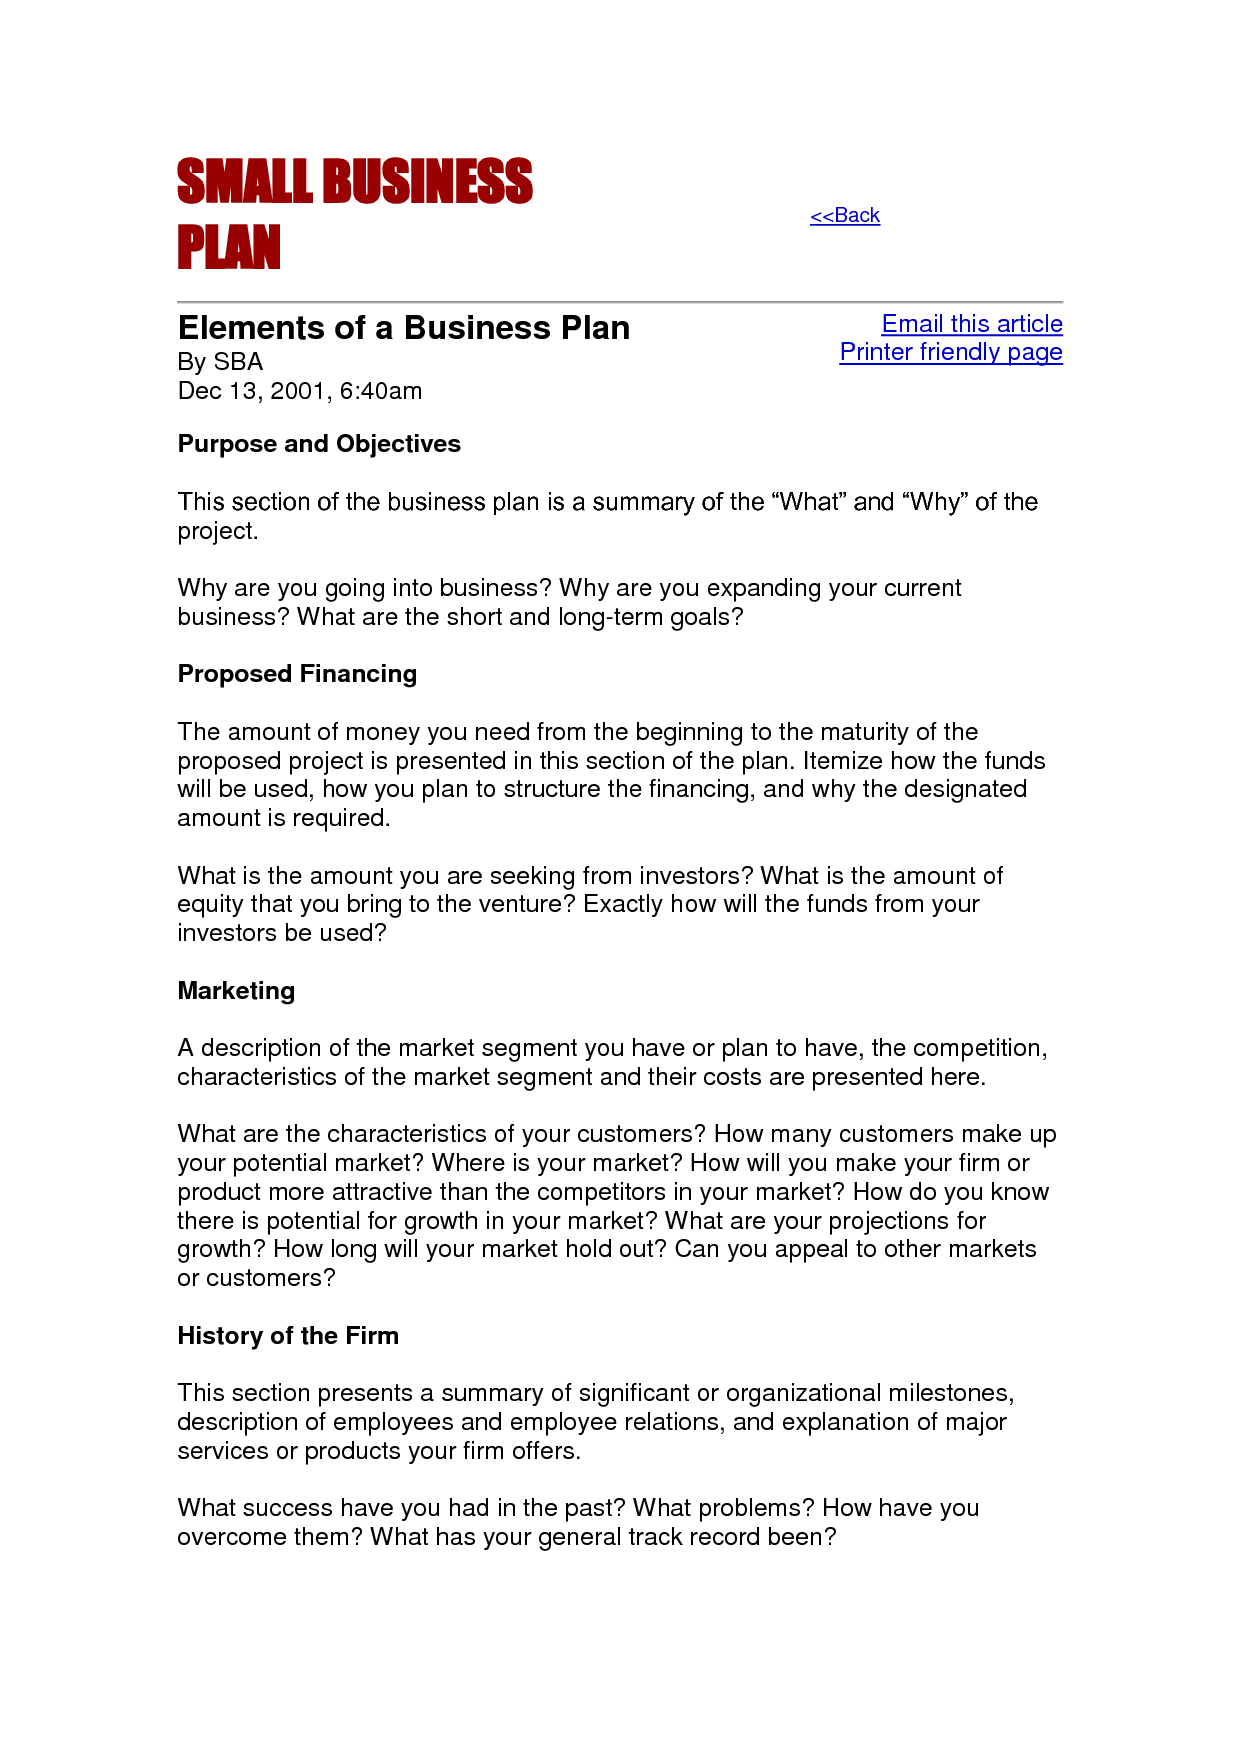 Small business proposal template building a stronger small small business proposal template building a stronger small business community at topgovernmentgrantssbdcp cheaphphosting